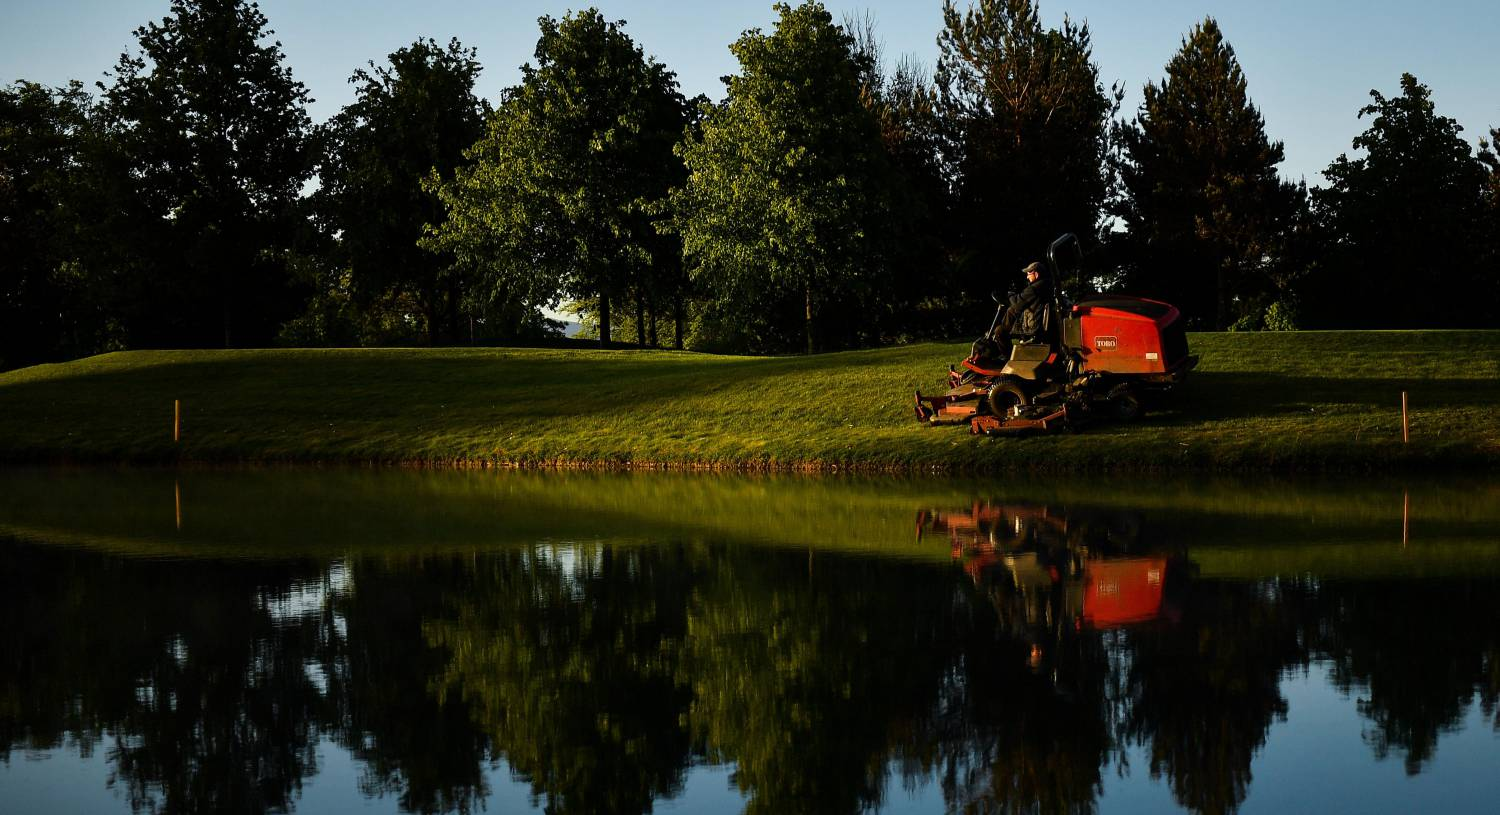 Q&A: Answering the key questions from golfers and clubs ahead of reopening